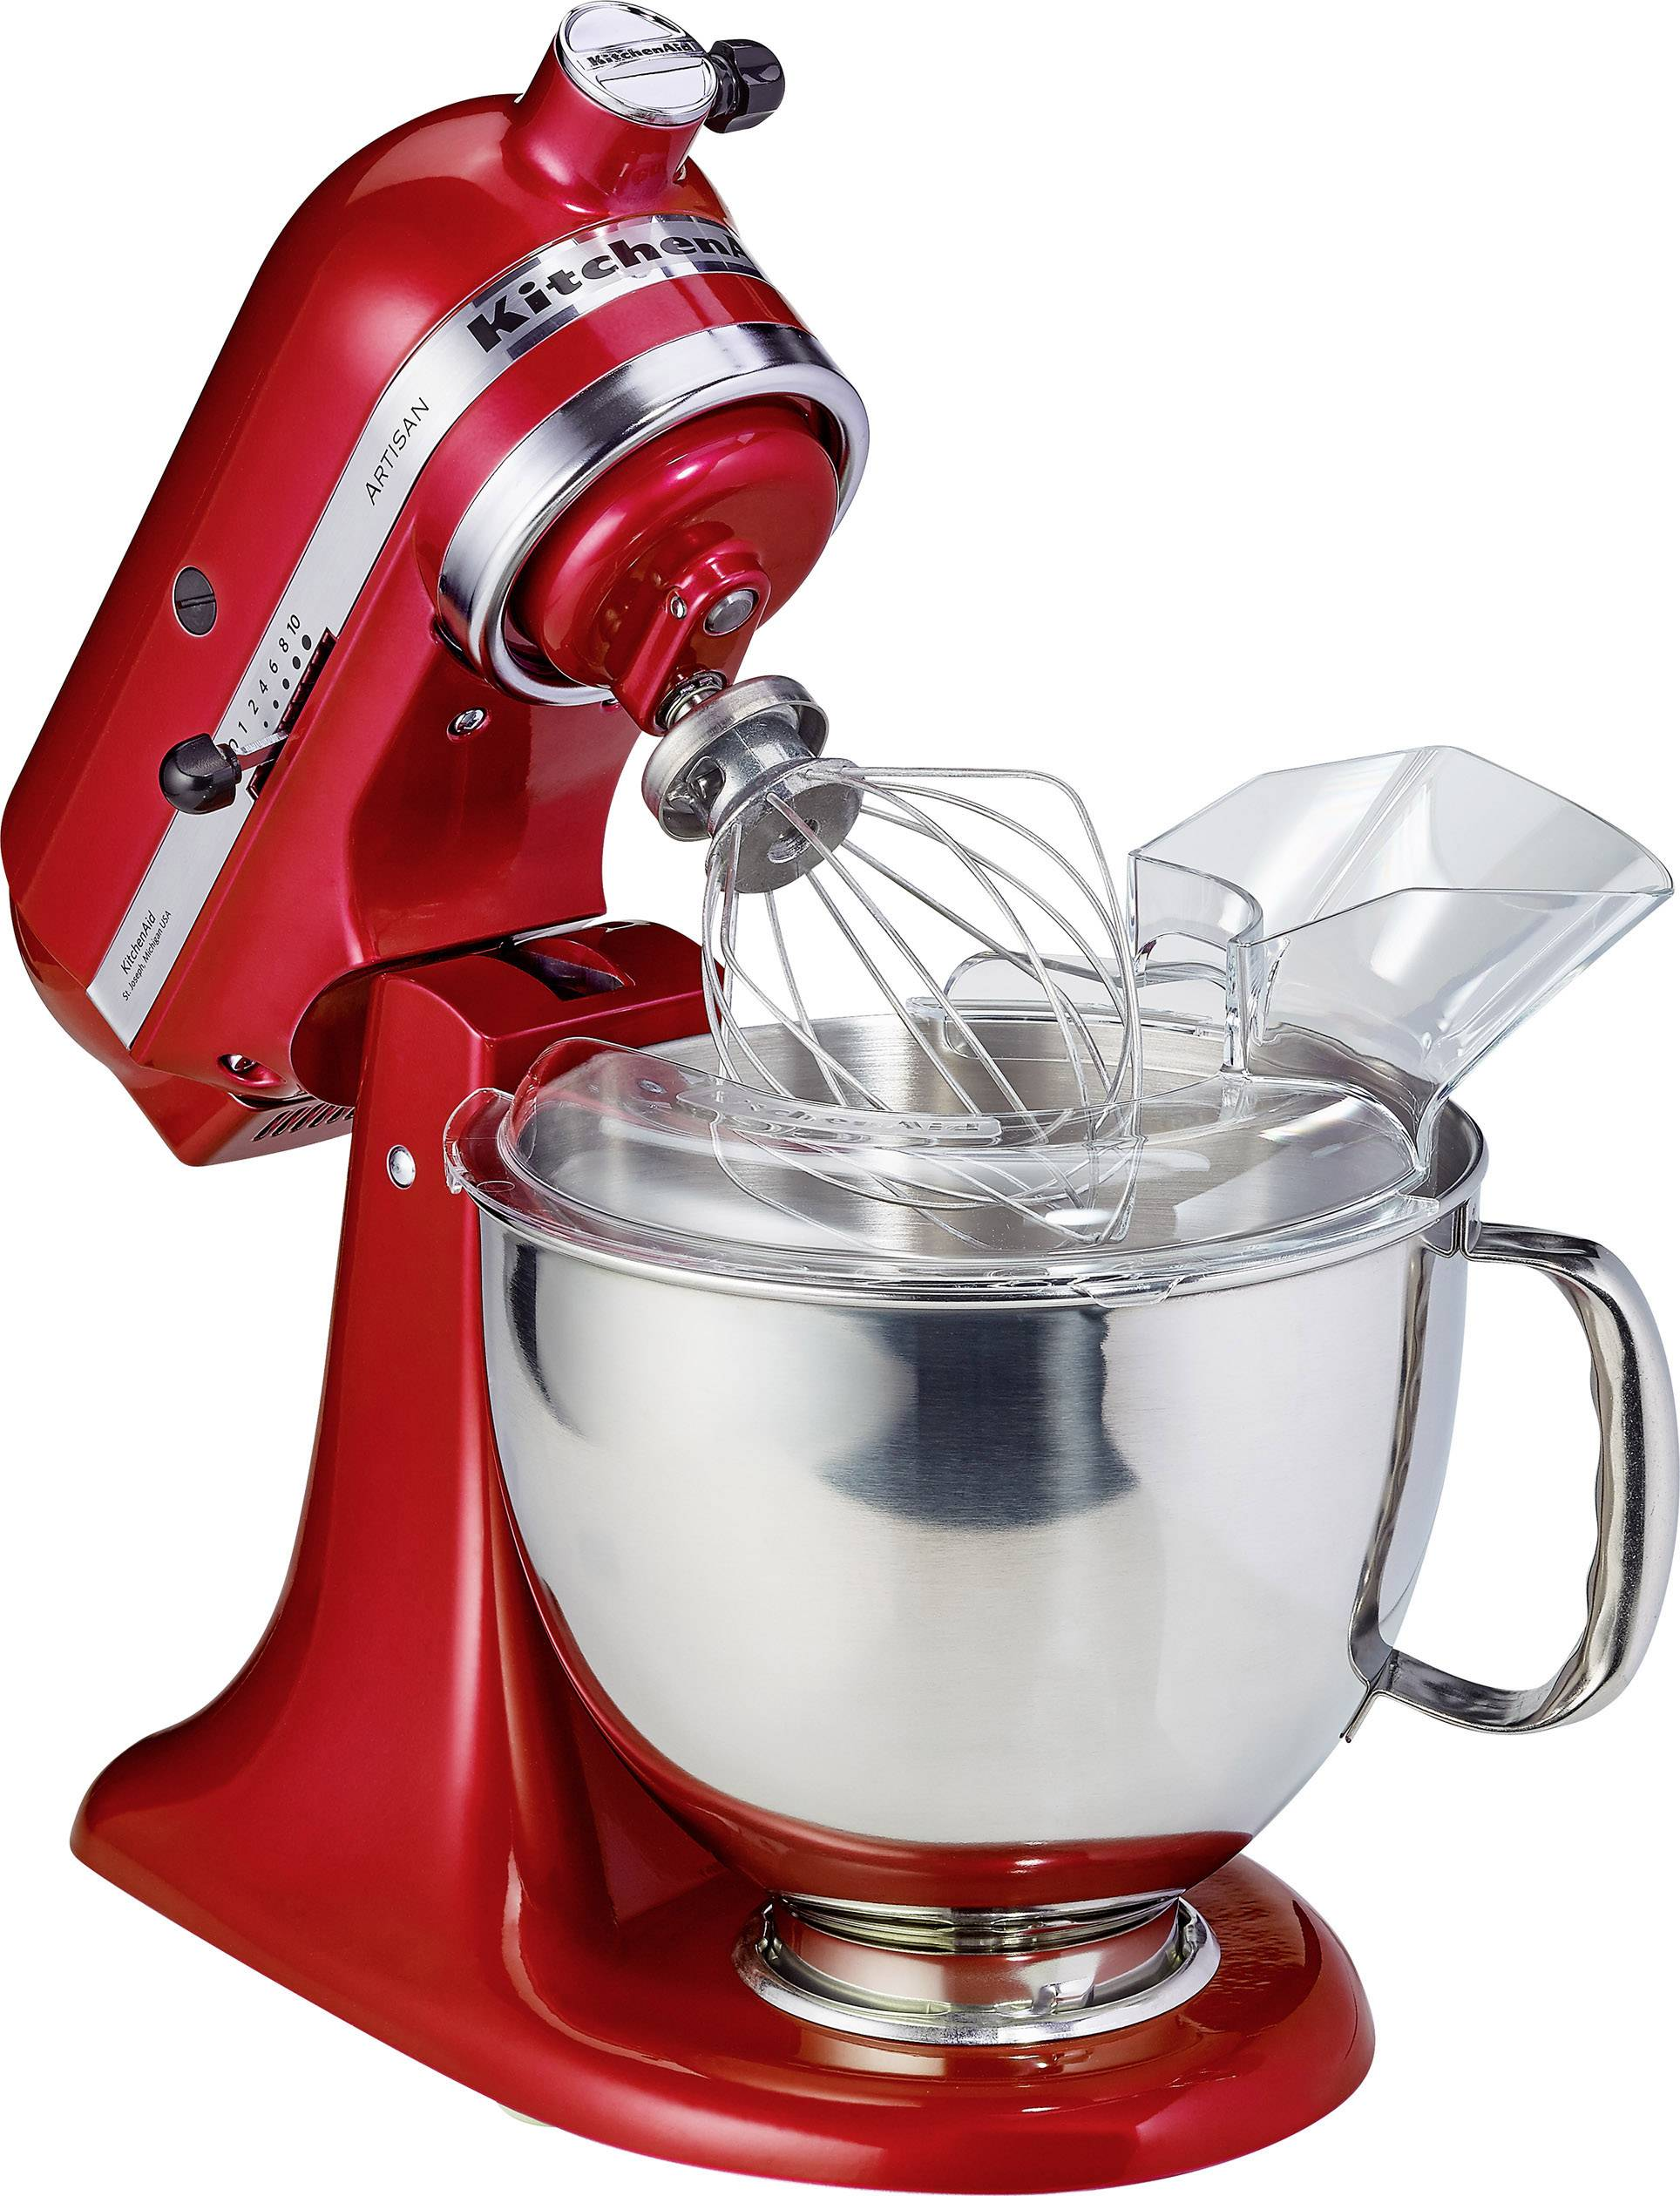 Kitchenaid Küchenmaschine Artisan Rot 5ksm150pseer Test Kitchenaid 5ksm 150 Pseer Kitchen Appliances Tips And Review